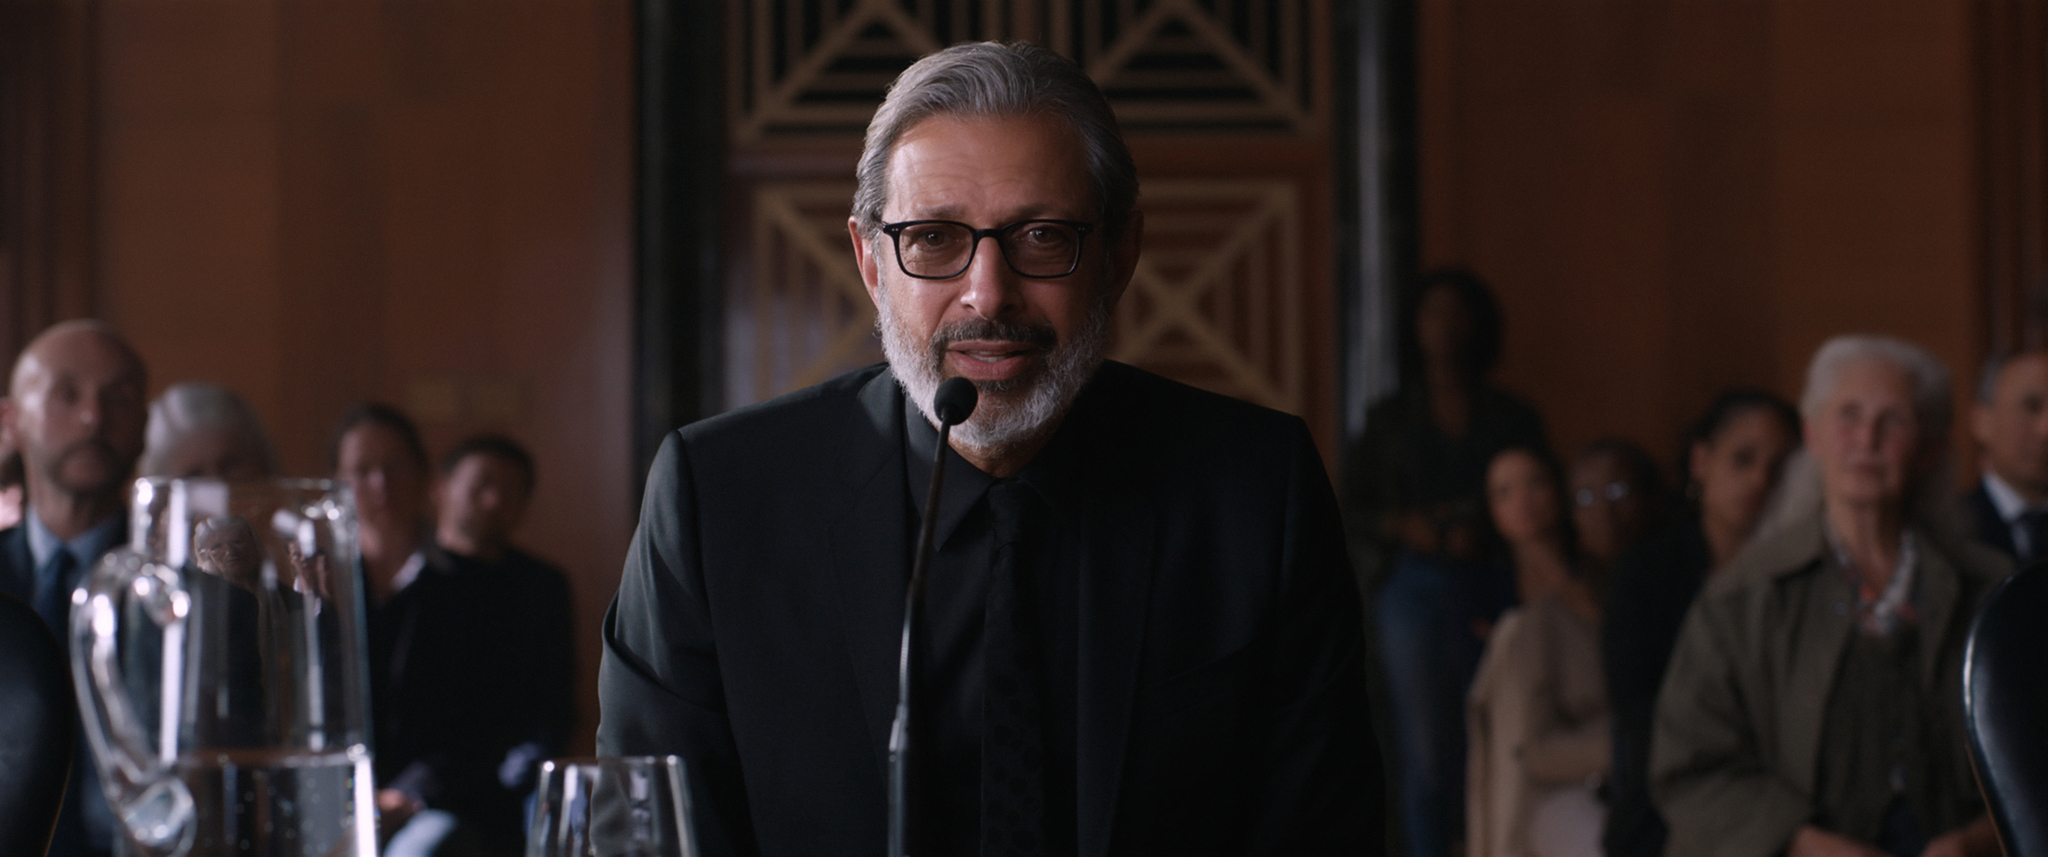 Jeff Goldblum in Jurassic World: Fallen Kingdom (2018)